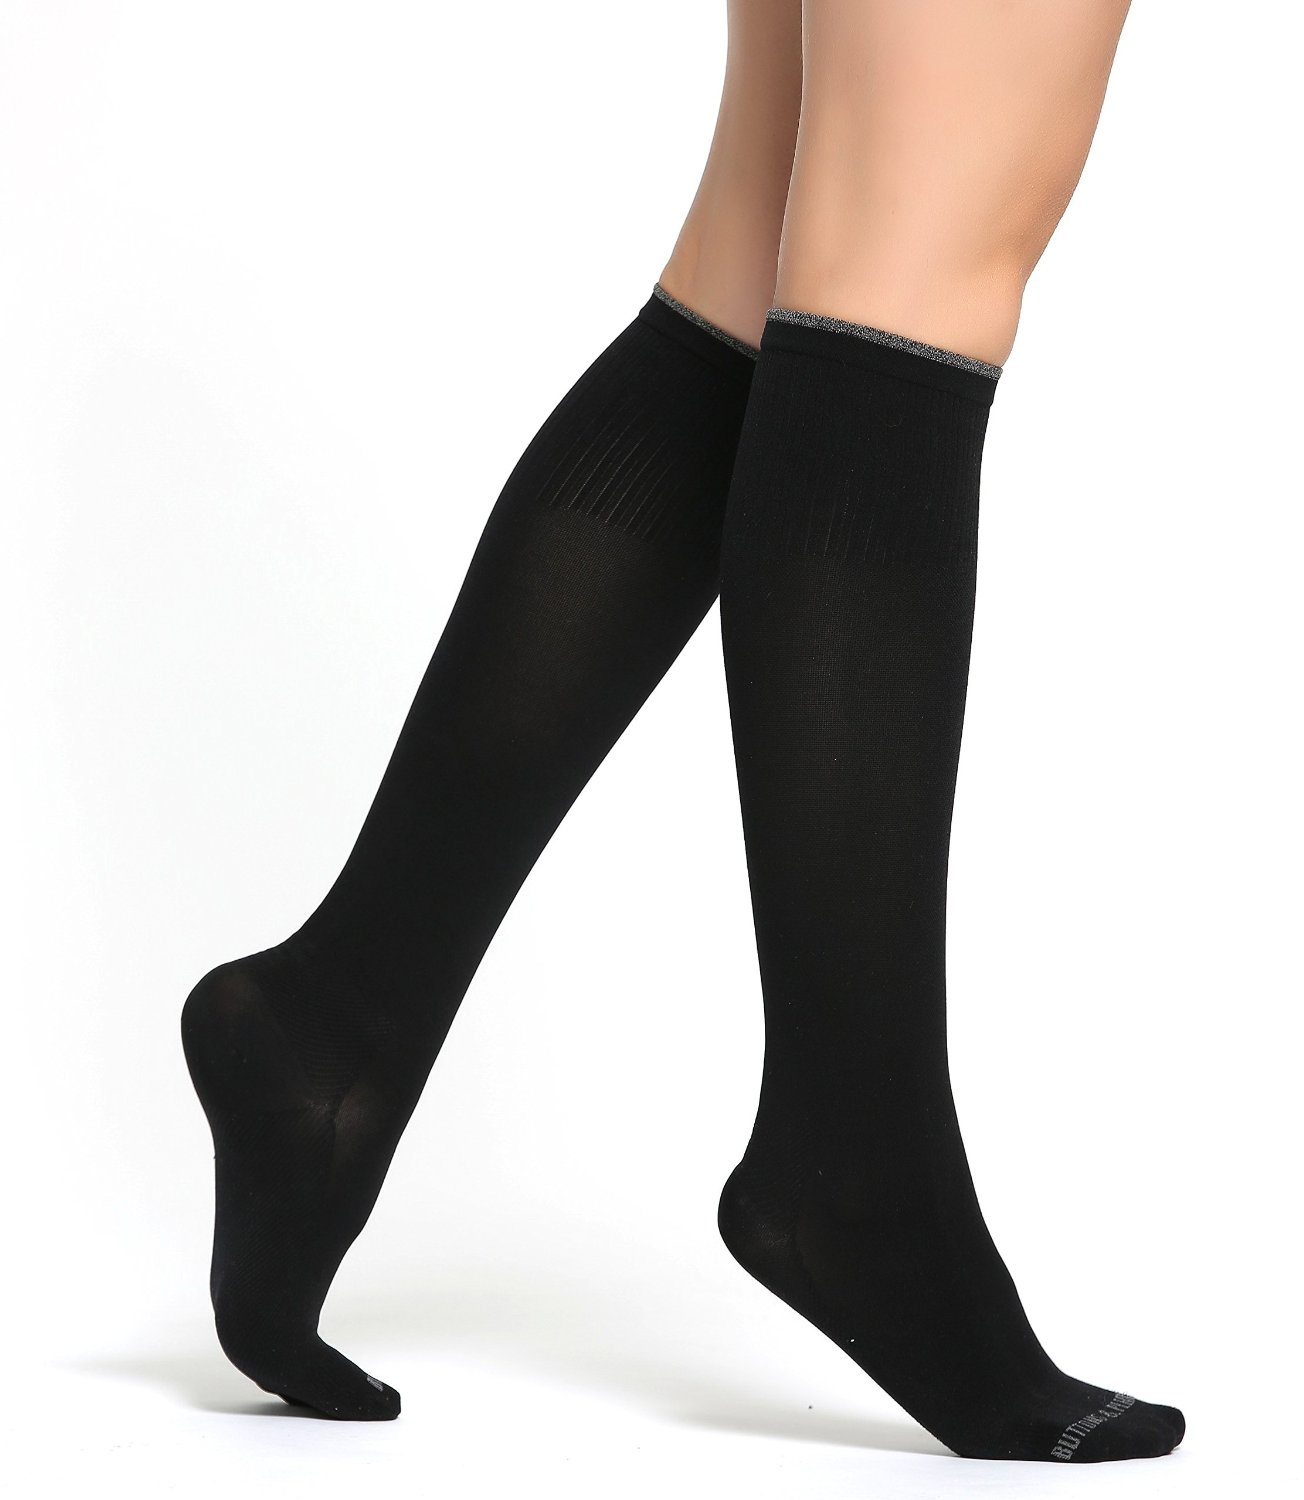 de854500f9 Get Quotations · Buttons & Pleats Compression Socks Womens - Pair of Medical  Grade Graduated Sock Stockings - Ideal